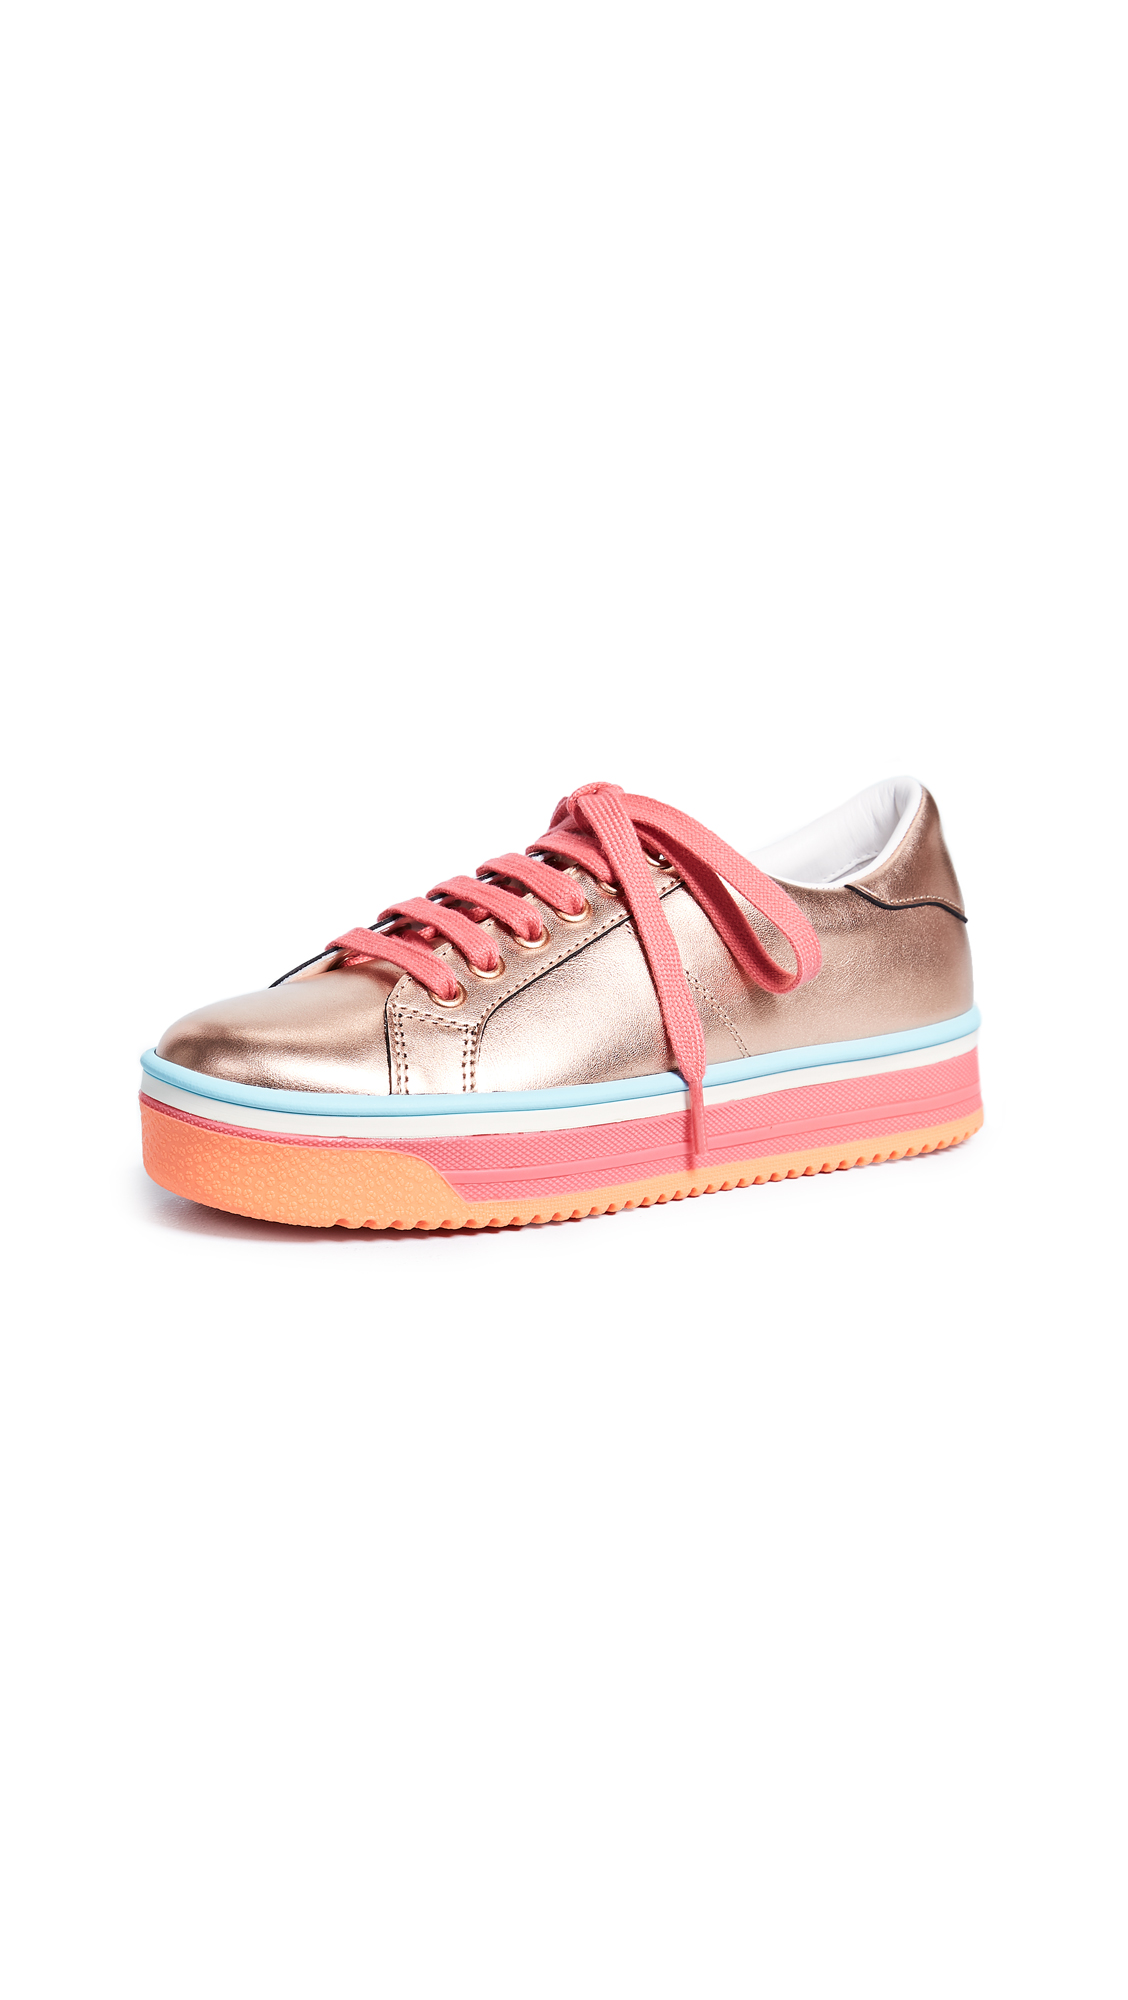 Marc Jacobs Empire Multi Color Sole Sneakers - Rose Gold/Hot Pink Multi